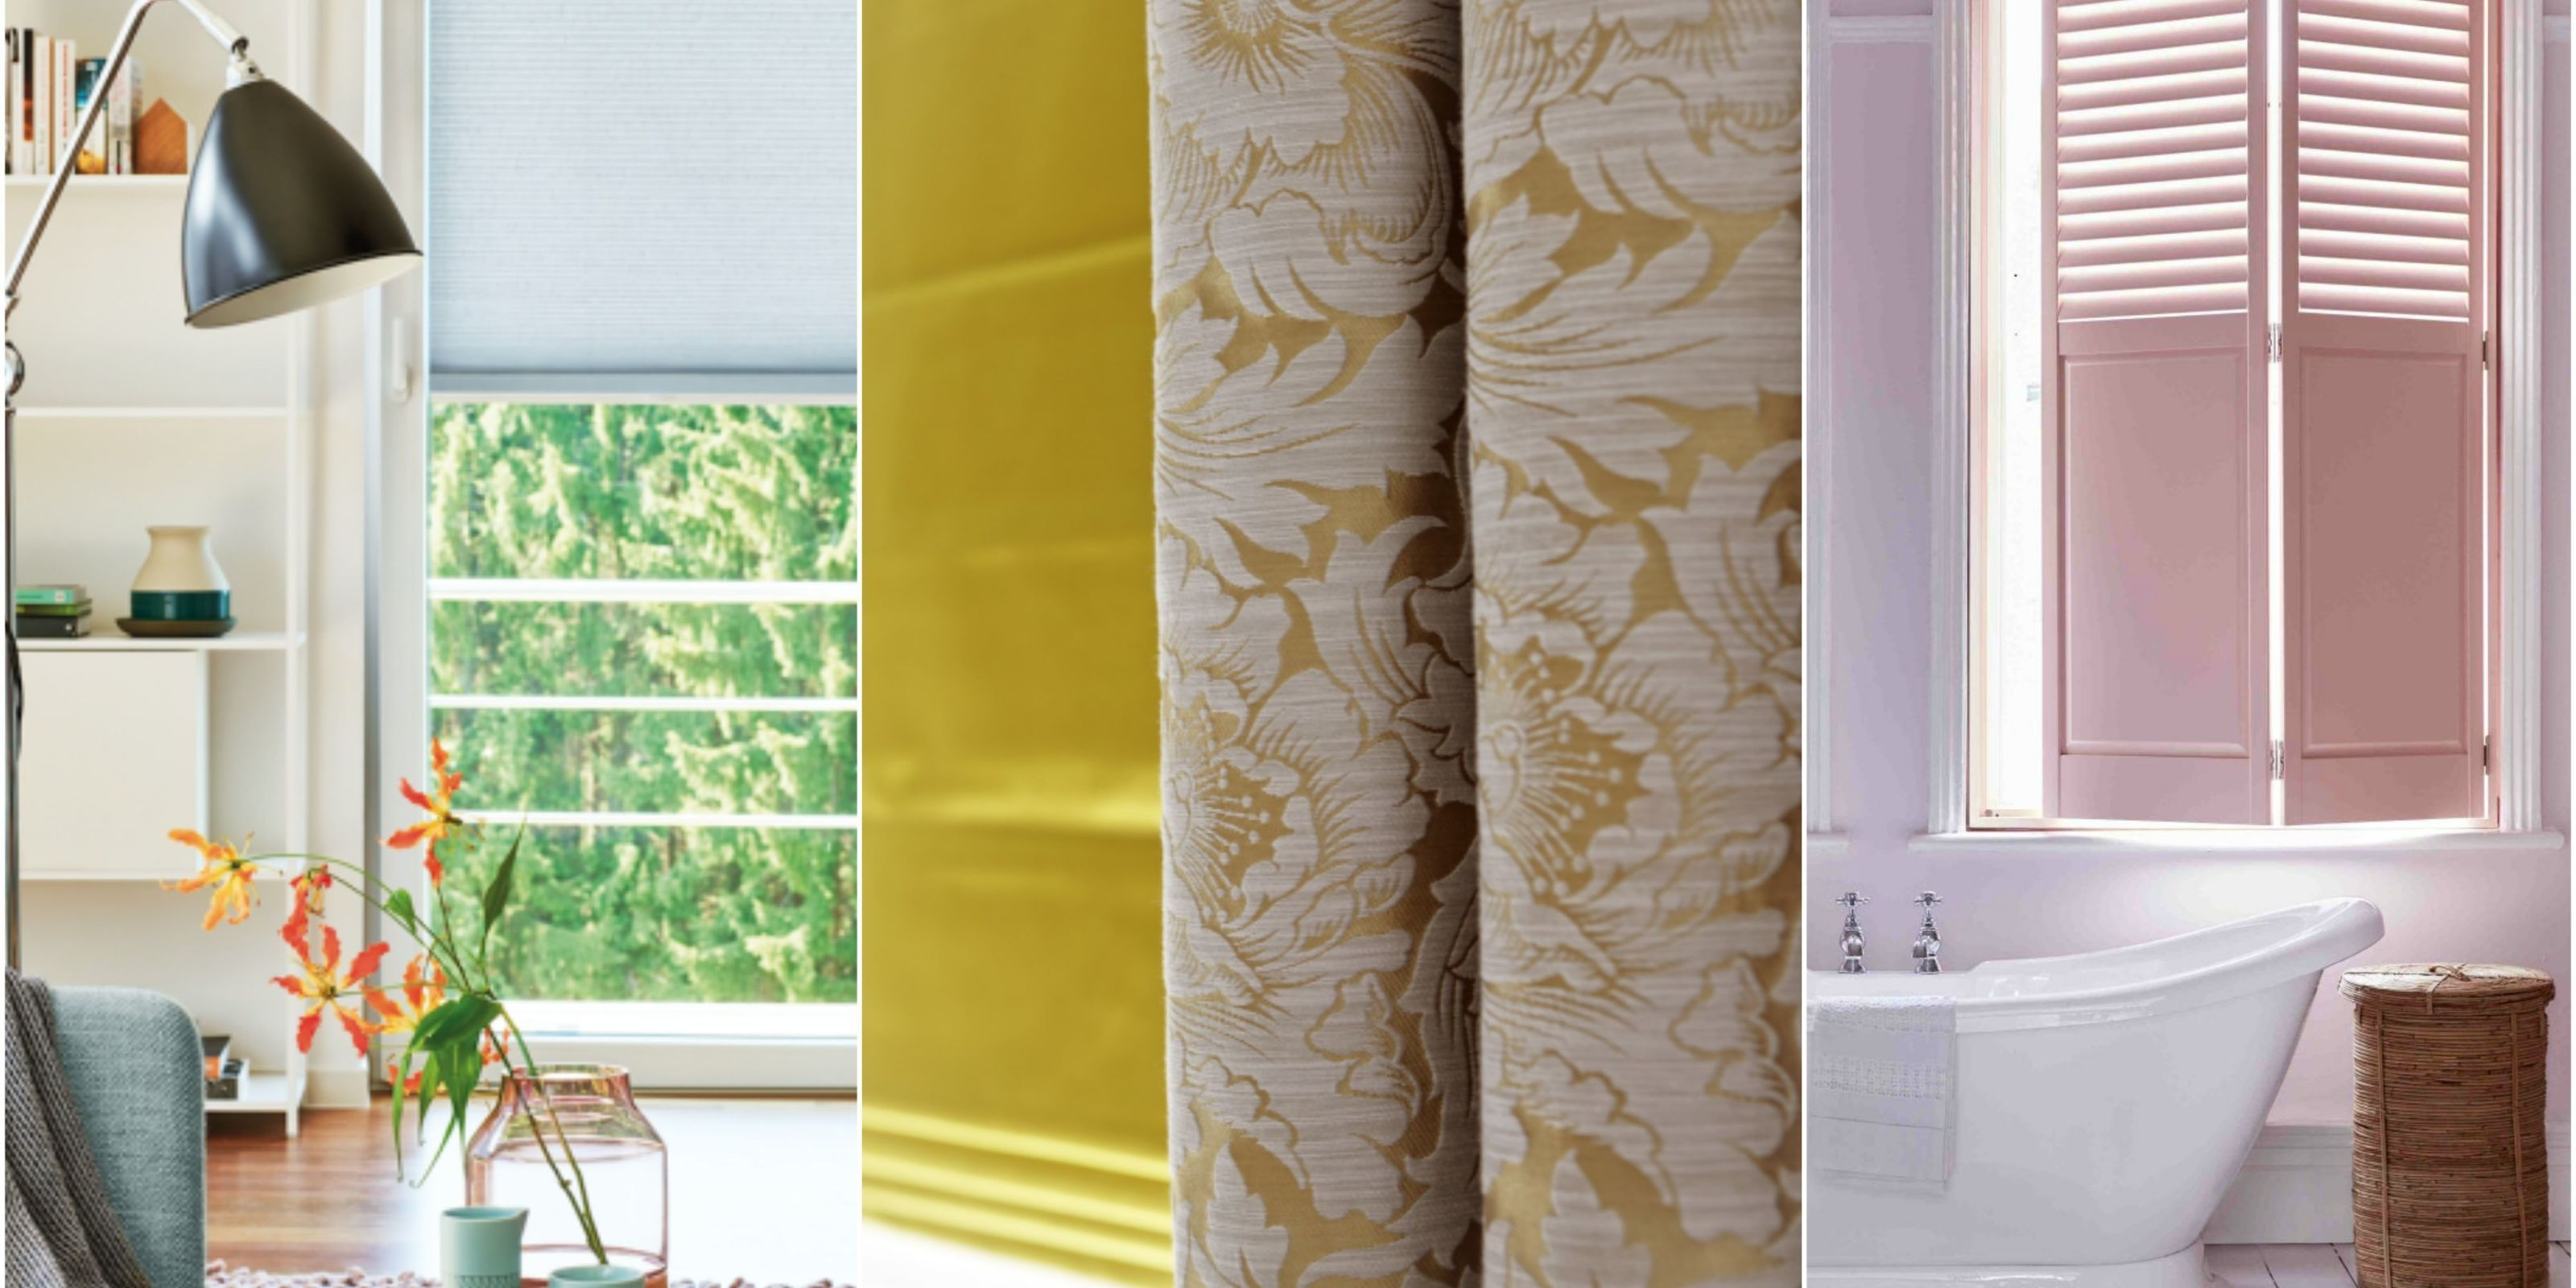 20 window dressing trends for 2017 blinds curtains and shutters & 20 colour and interior window trends for 2017: blinds curtains and ...